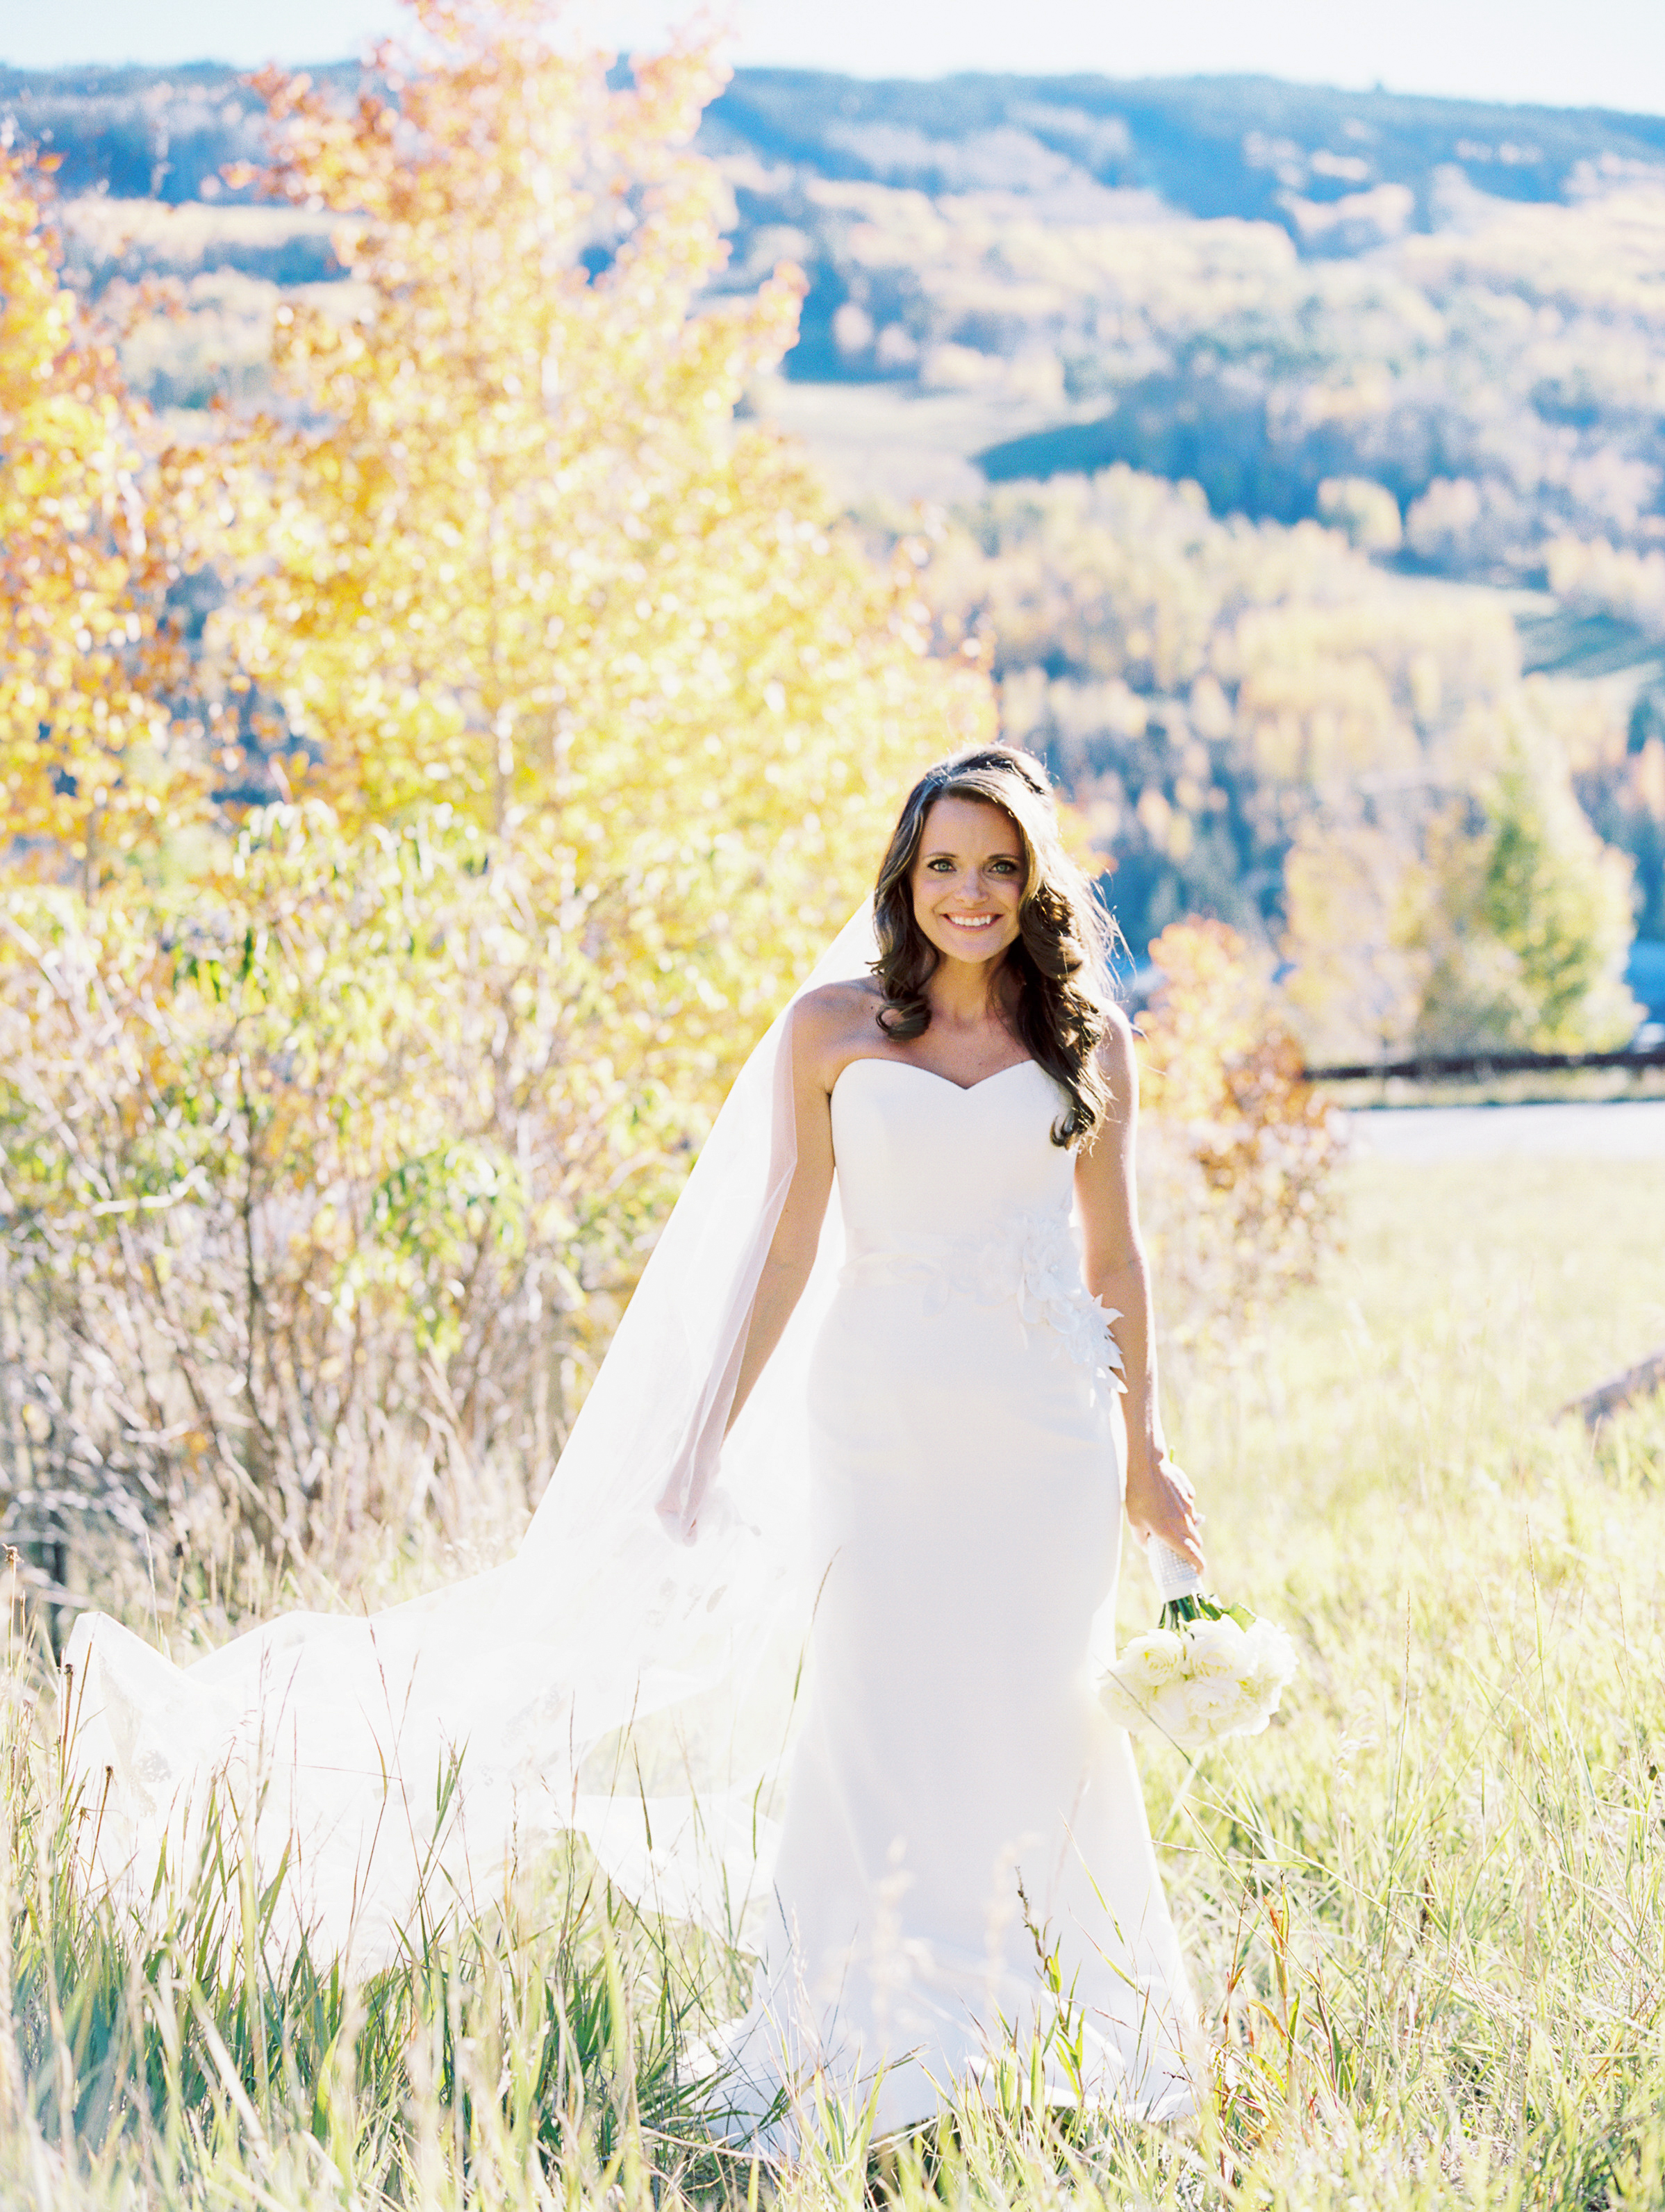 Misty | October 4, 2014 | Four Seasons Vail | Vail, Colorado |  Cassidy Brooke Photography